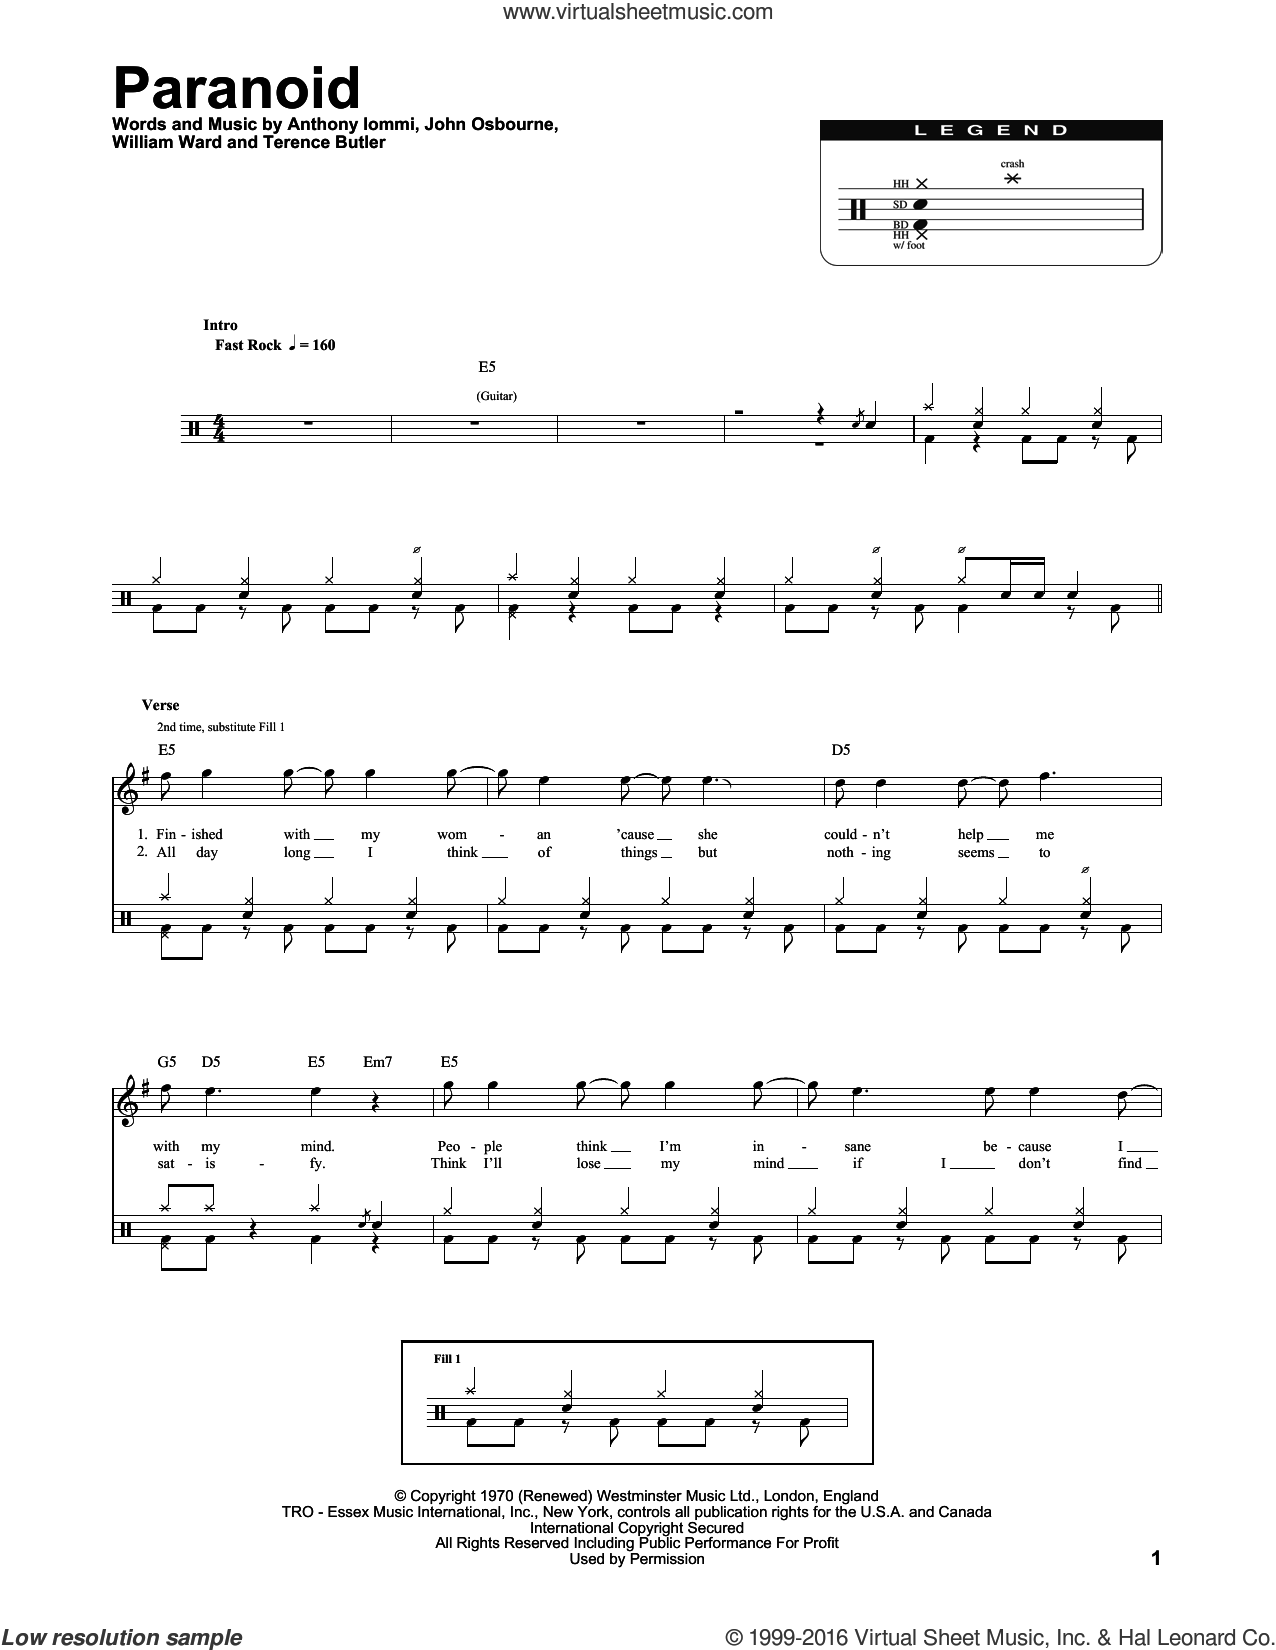 Paranoid sheet music for drums by Black Sabbath, Anthony Iommi, John Osbourne, Terence Butler and William Ward, intermediate skill level